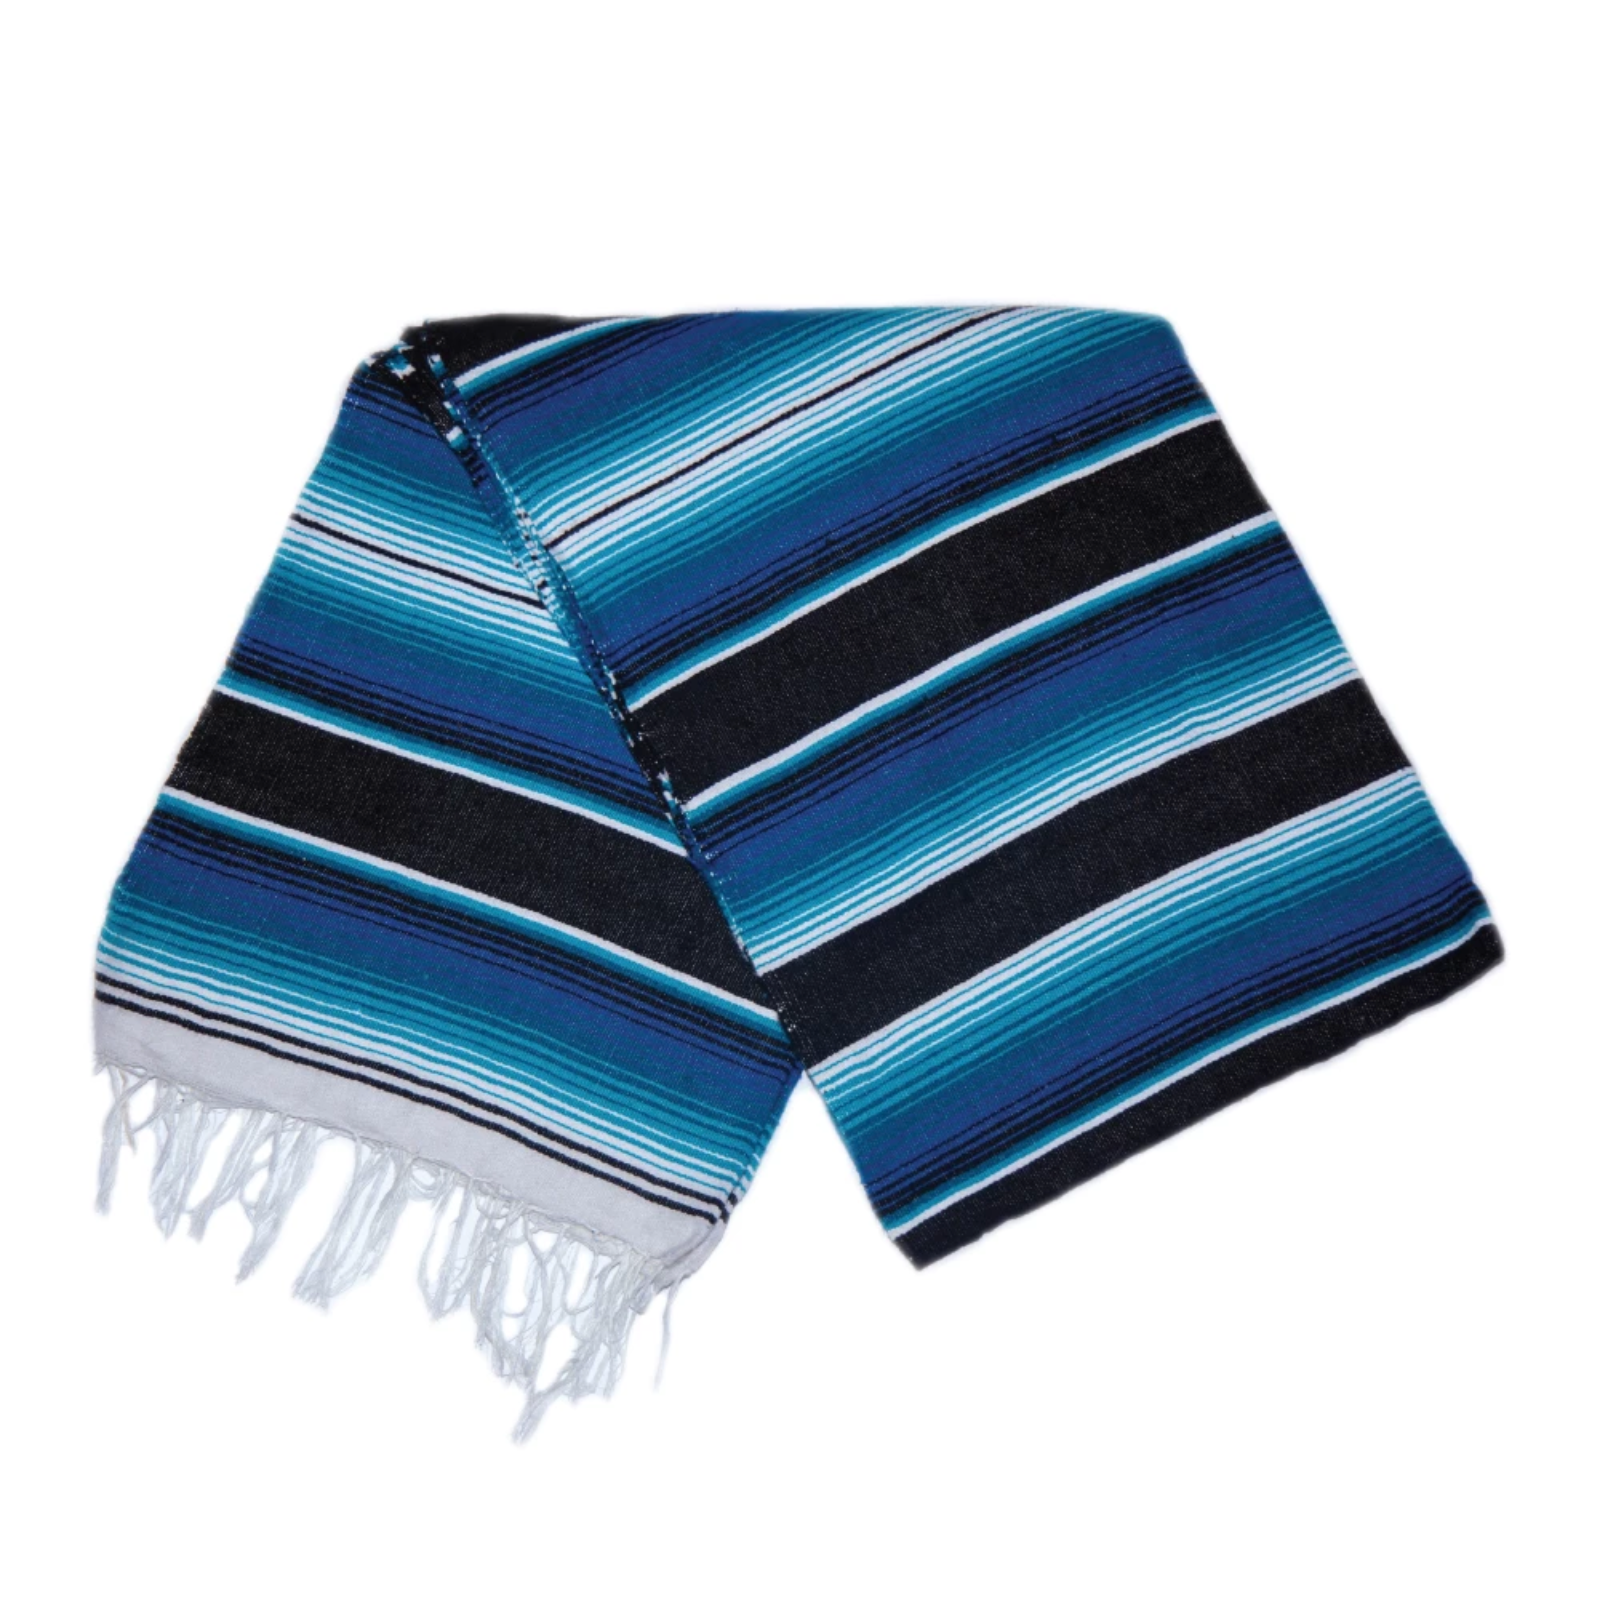 Serape Blanket- Blue and Black